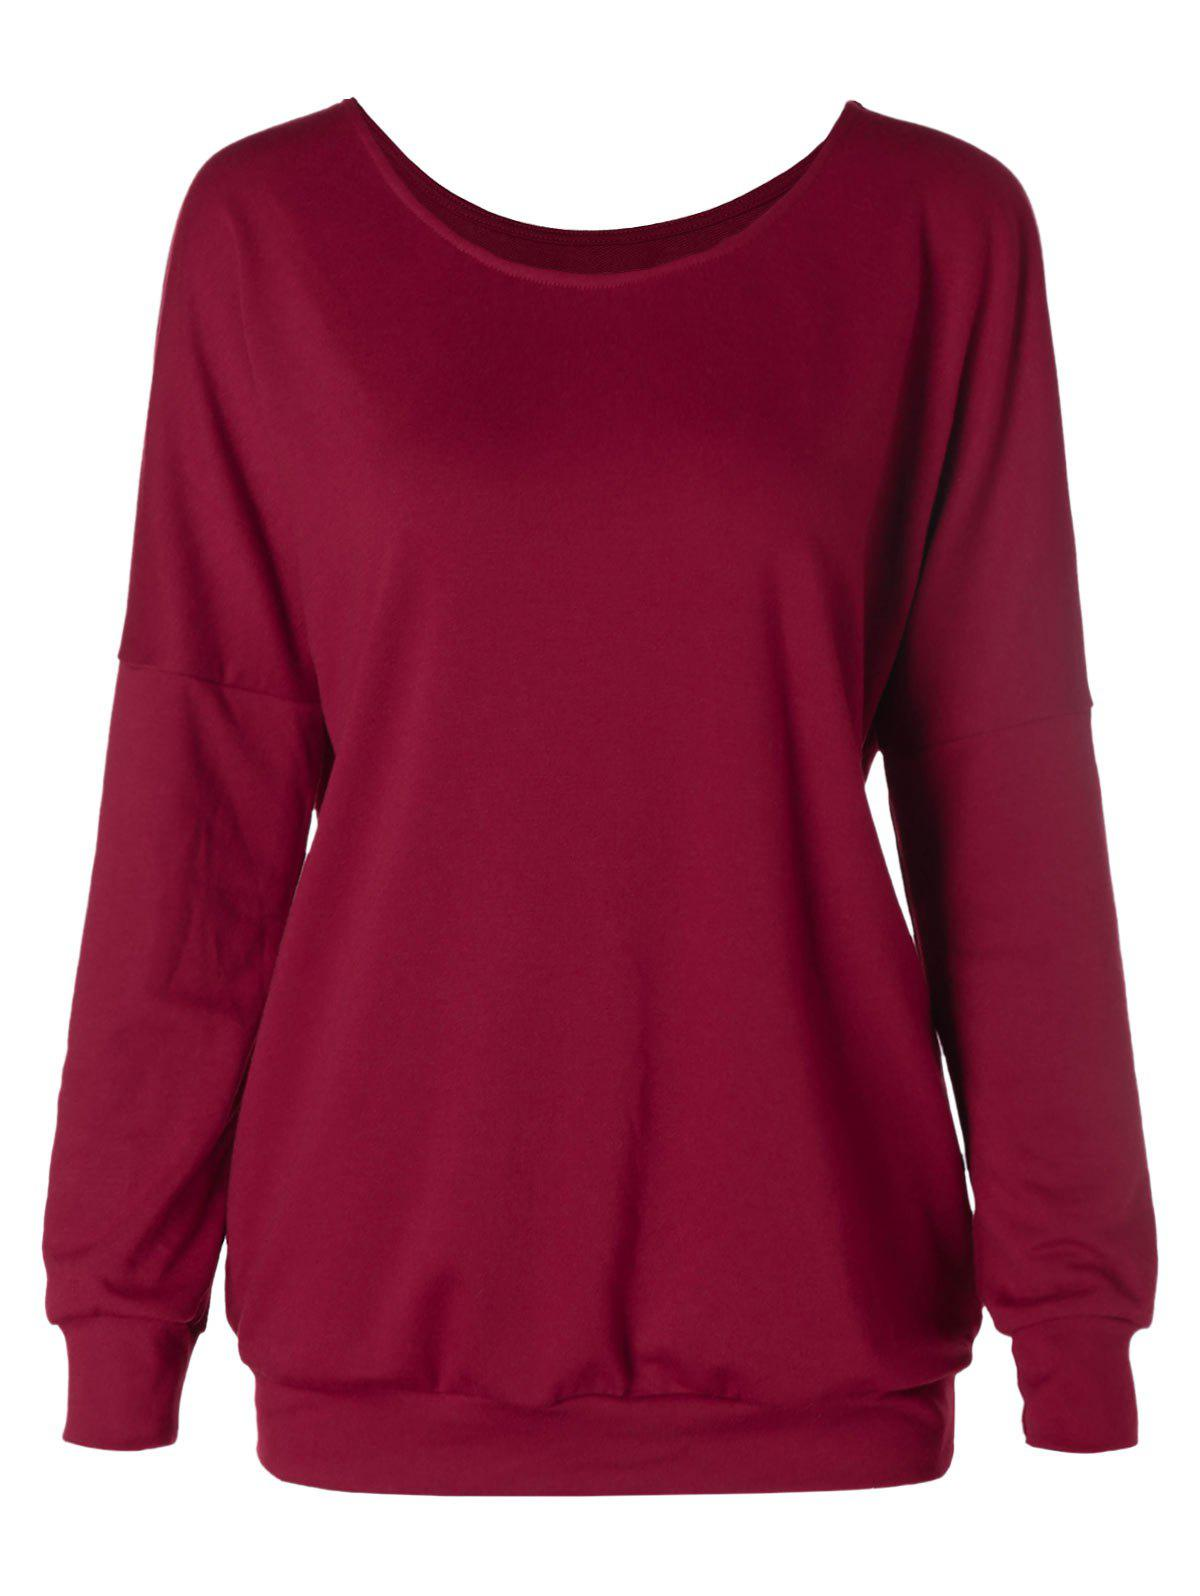 Best Solid Color Drop Shoulder Scoop Neck Sweatshirt